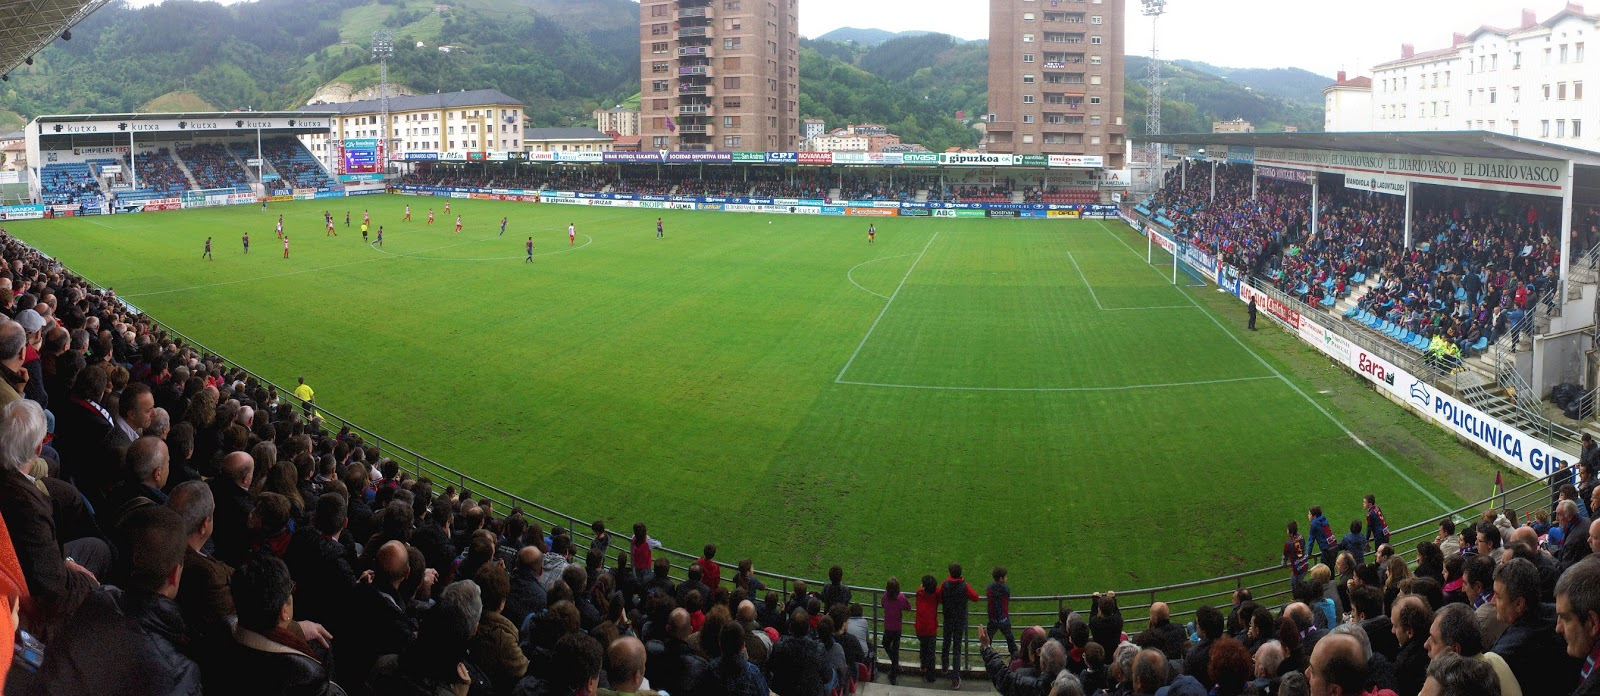 Eibar VS Leganes ( BETTING TIPS, Match Preview & Expert Analysis )